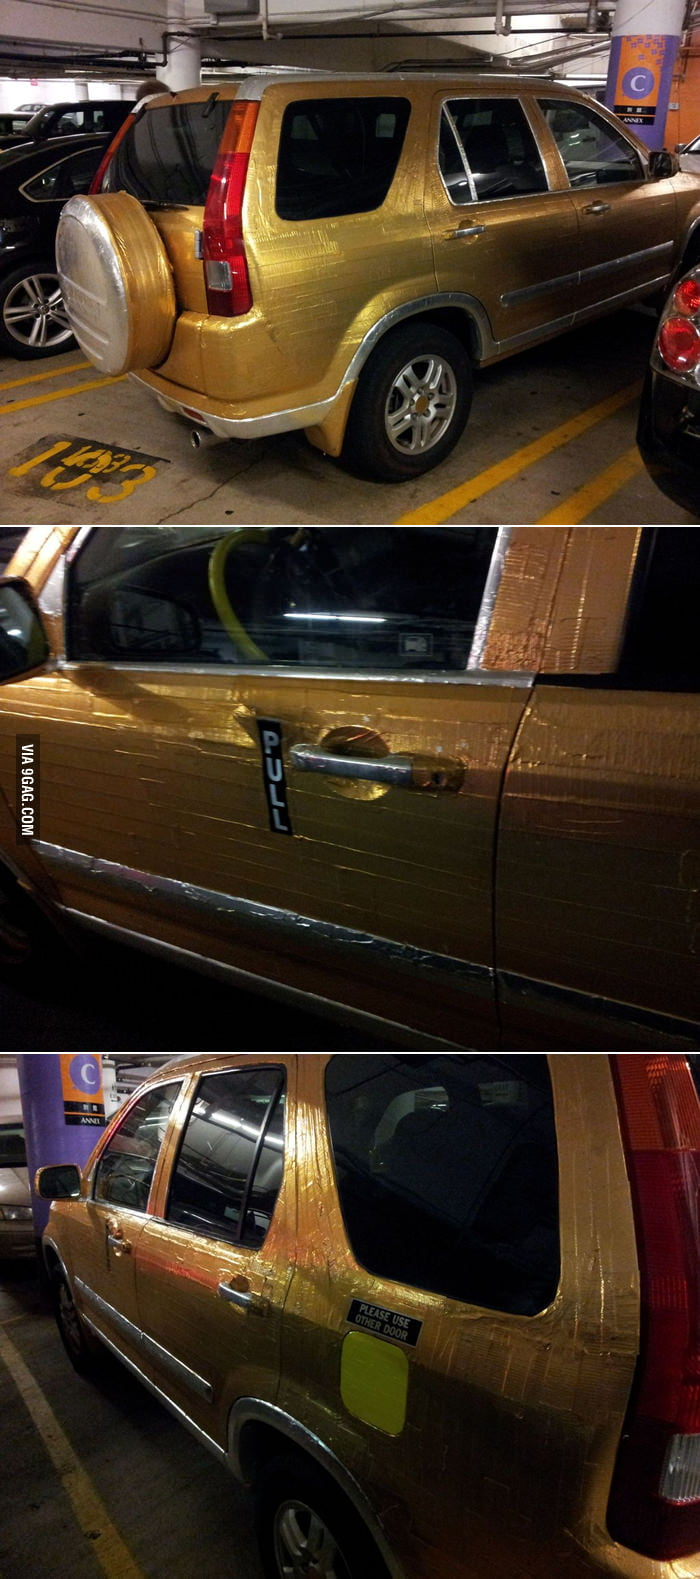 Who needs paint when you have duct tape?